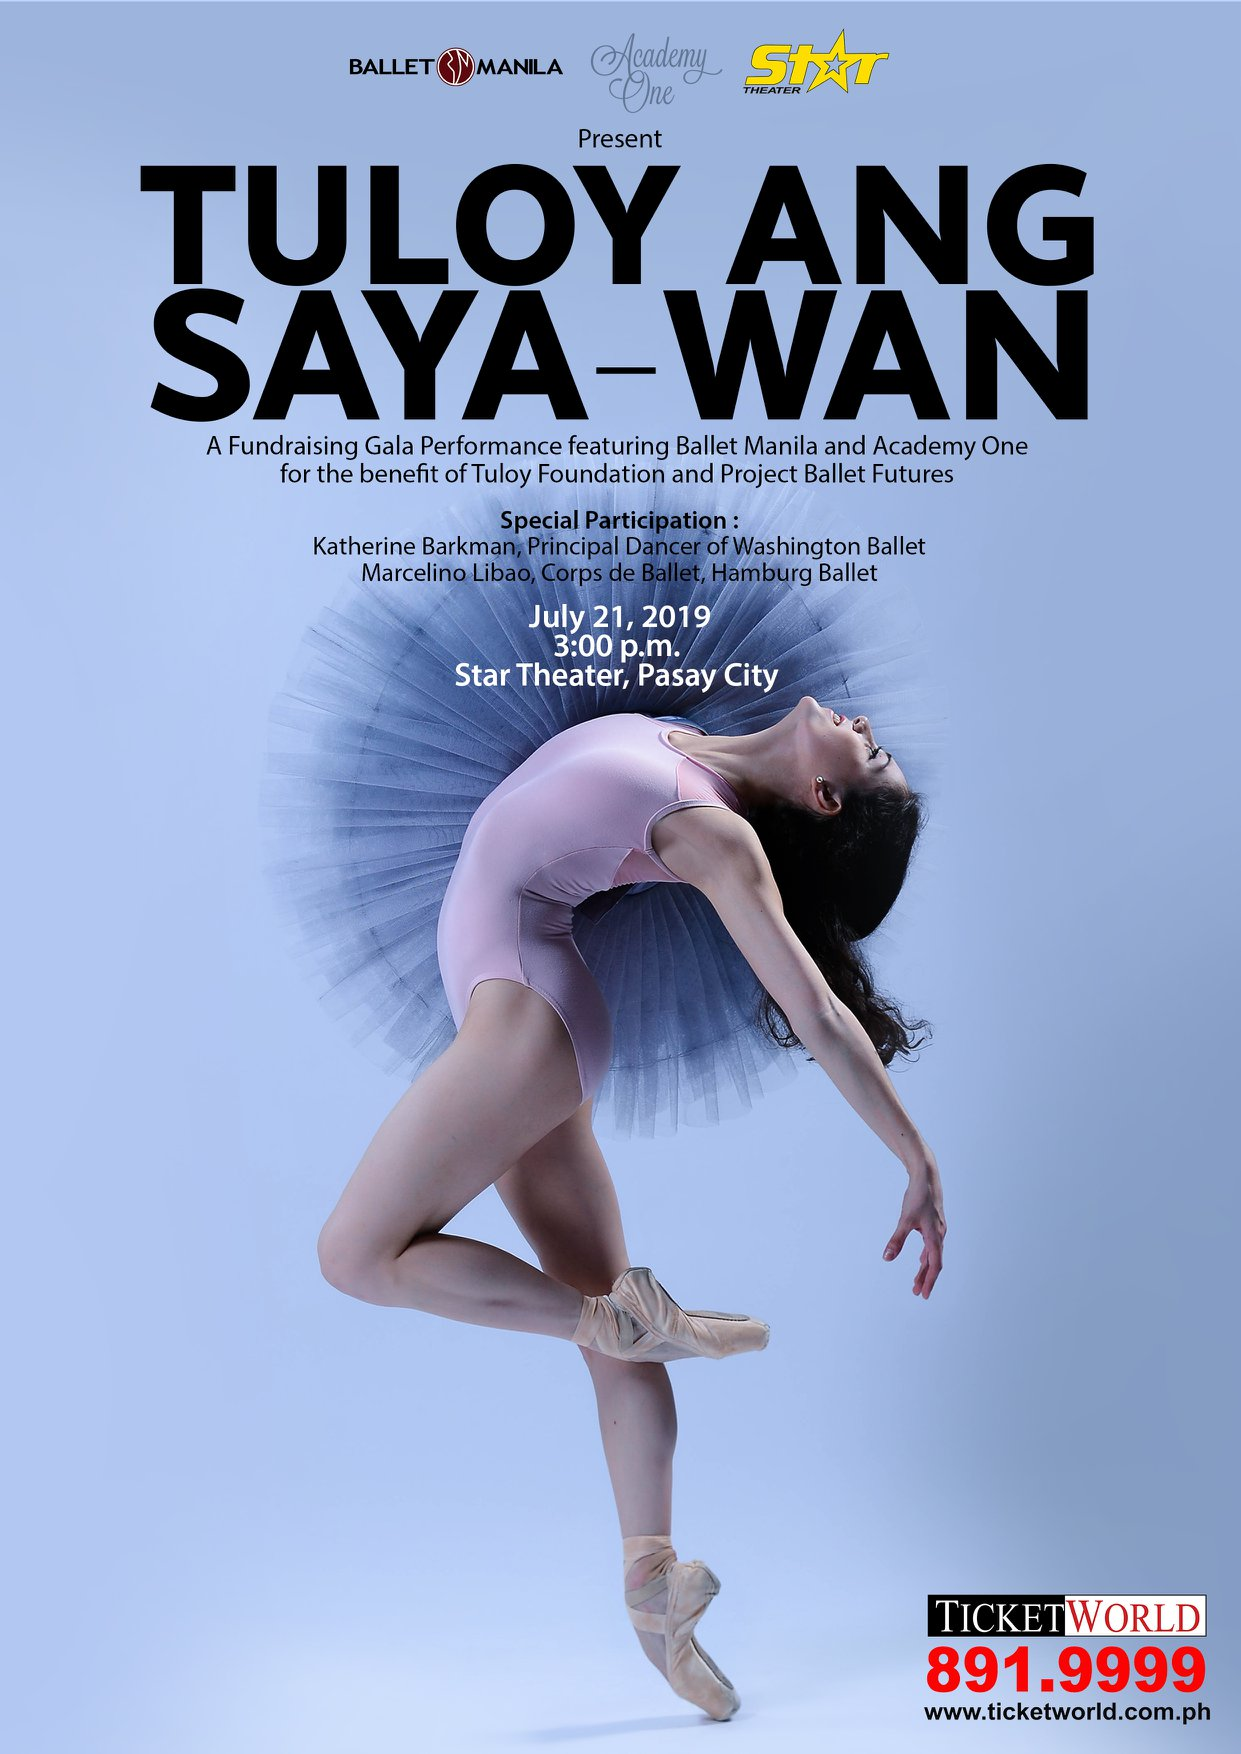 Katherine appears in the  Tuloy ang Saya-wan  poster, in a photograph taken by Ballet Manila principal dancer Mark Sumaylo just before she left Manila in October 2018.